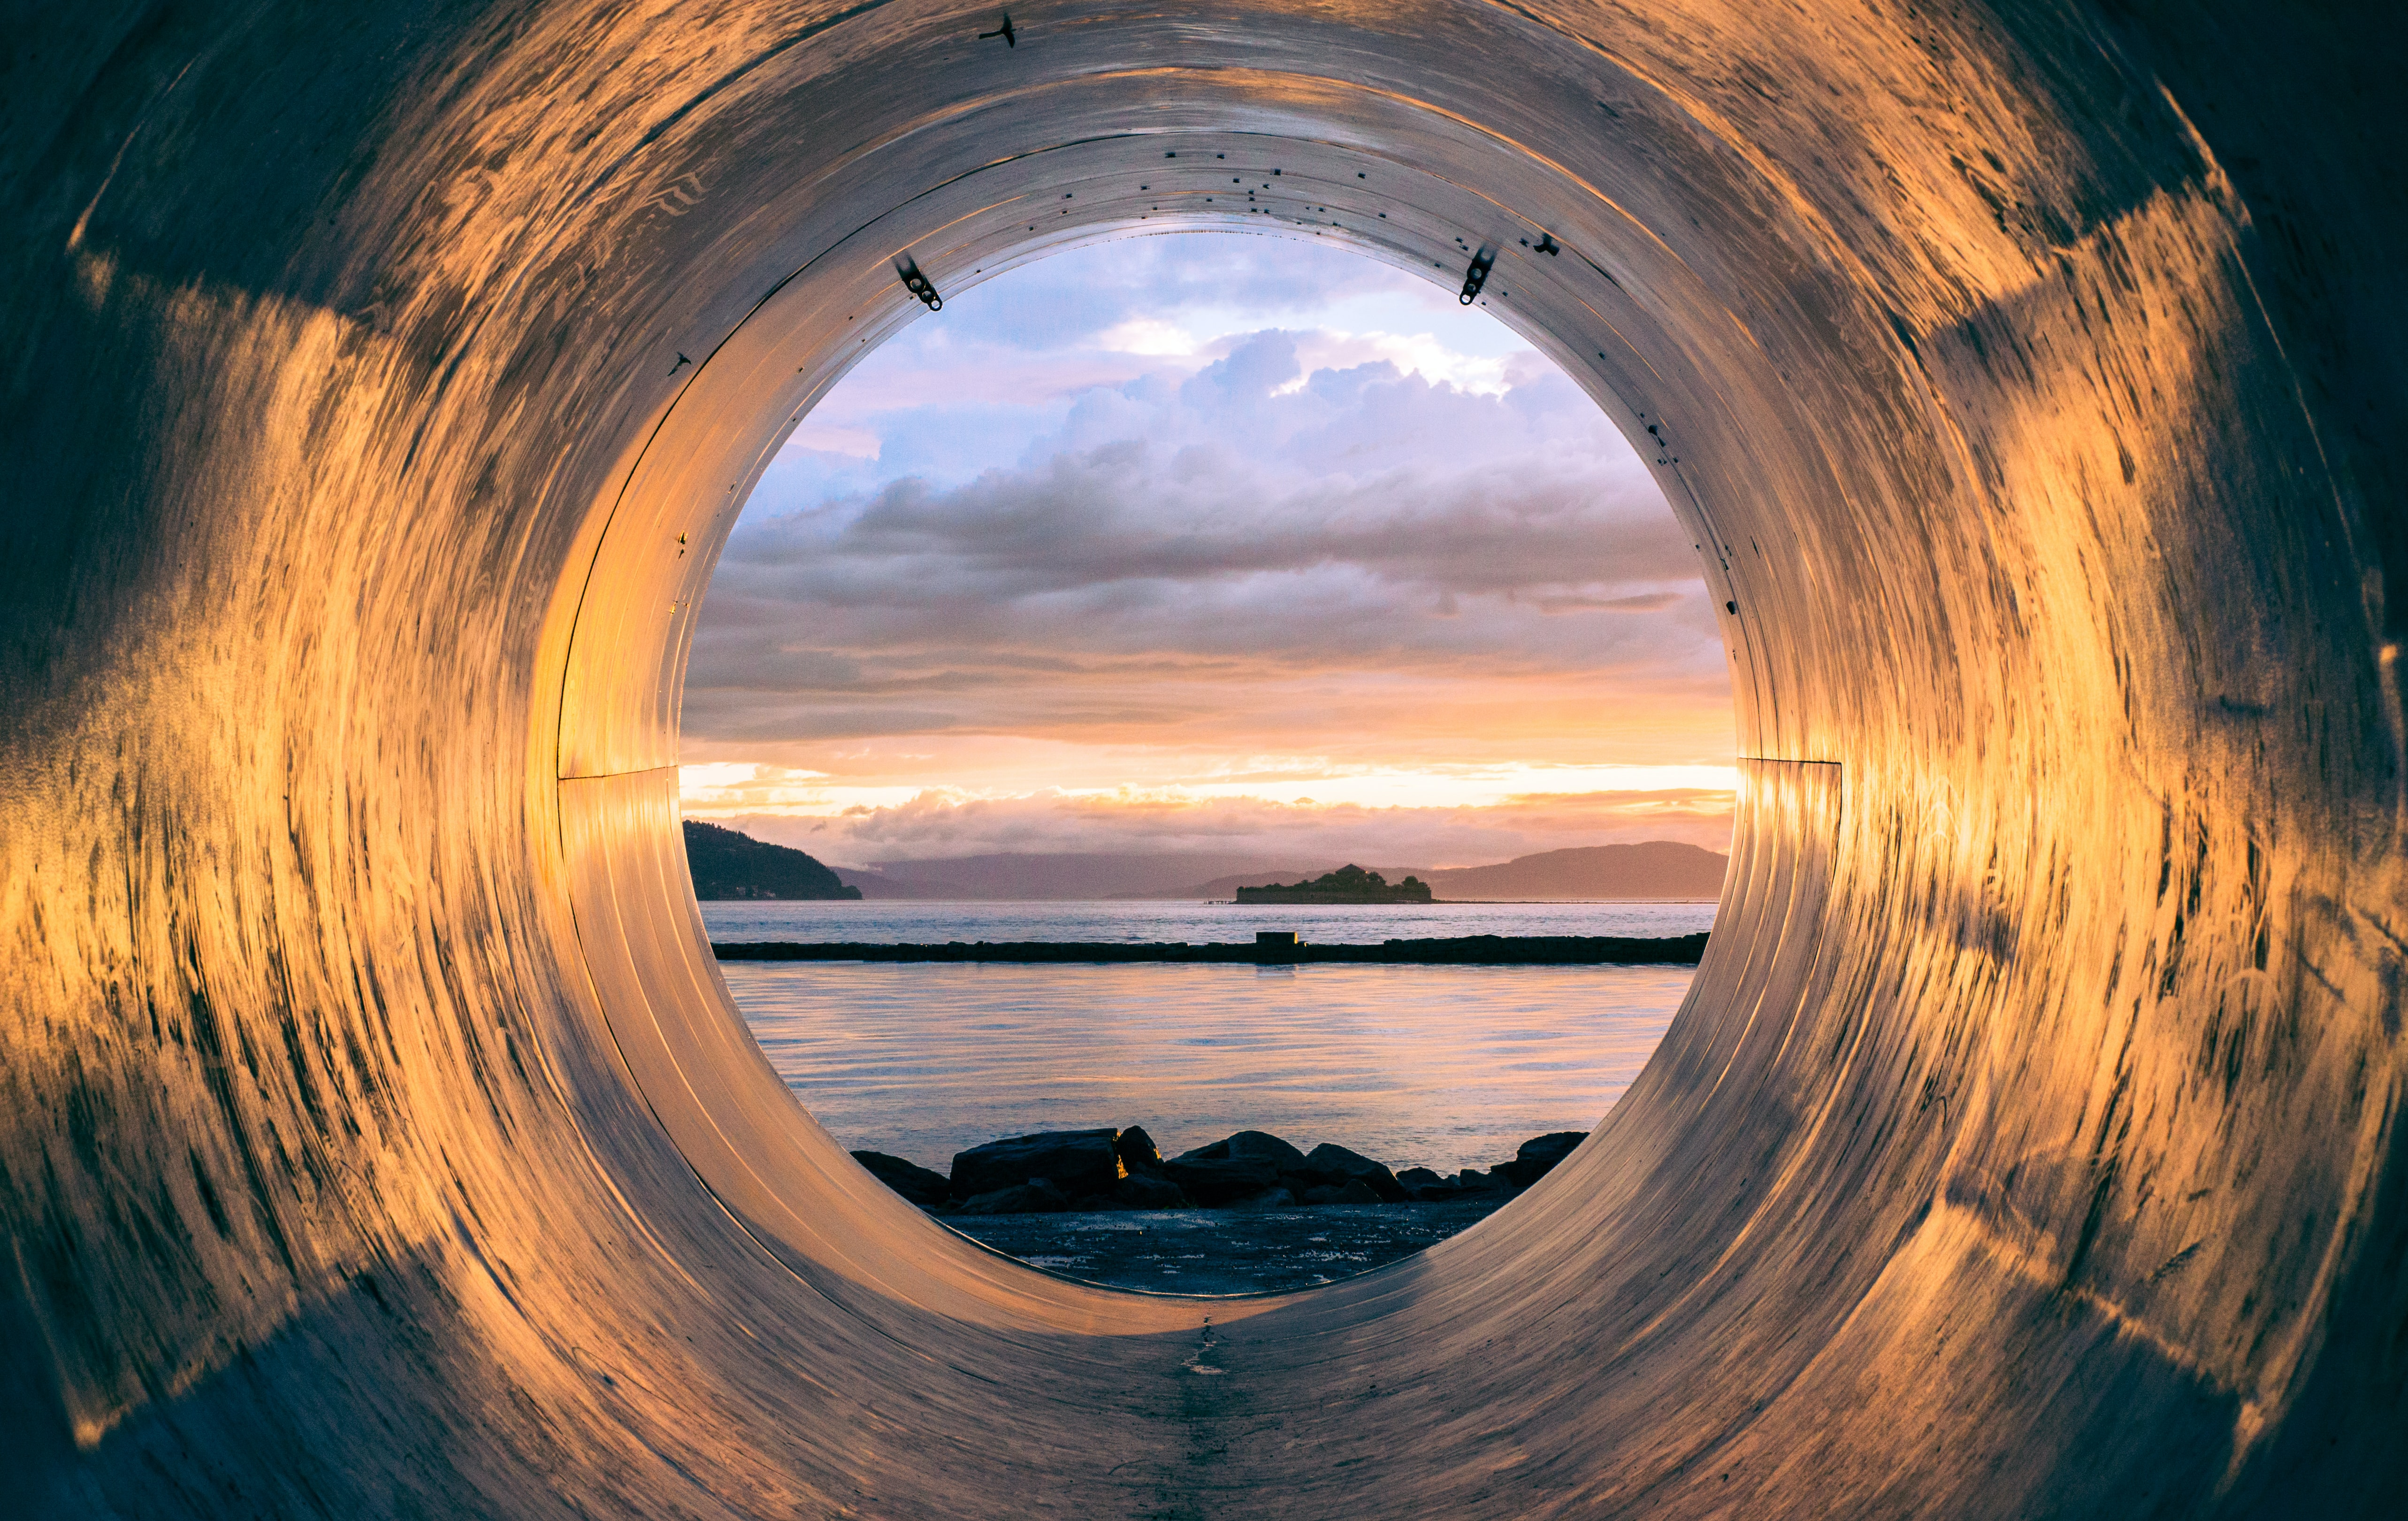 body of water can be seen through the tunnel